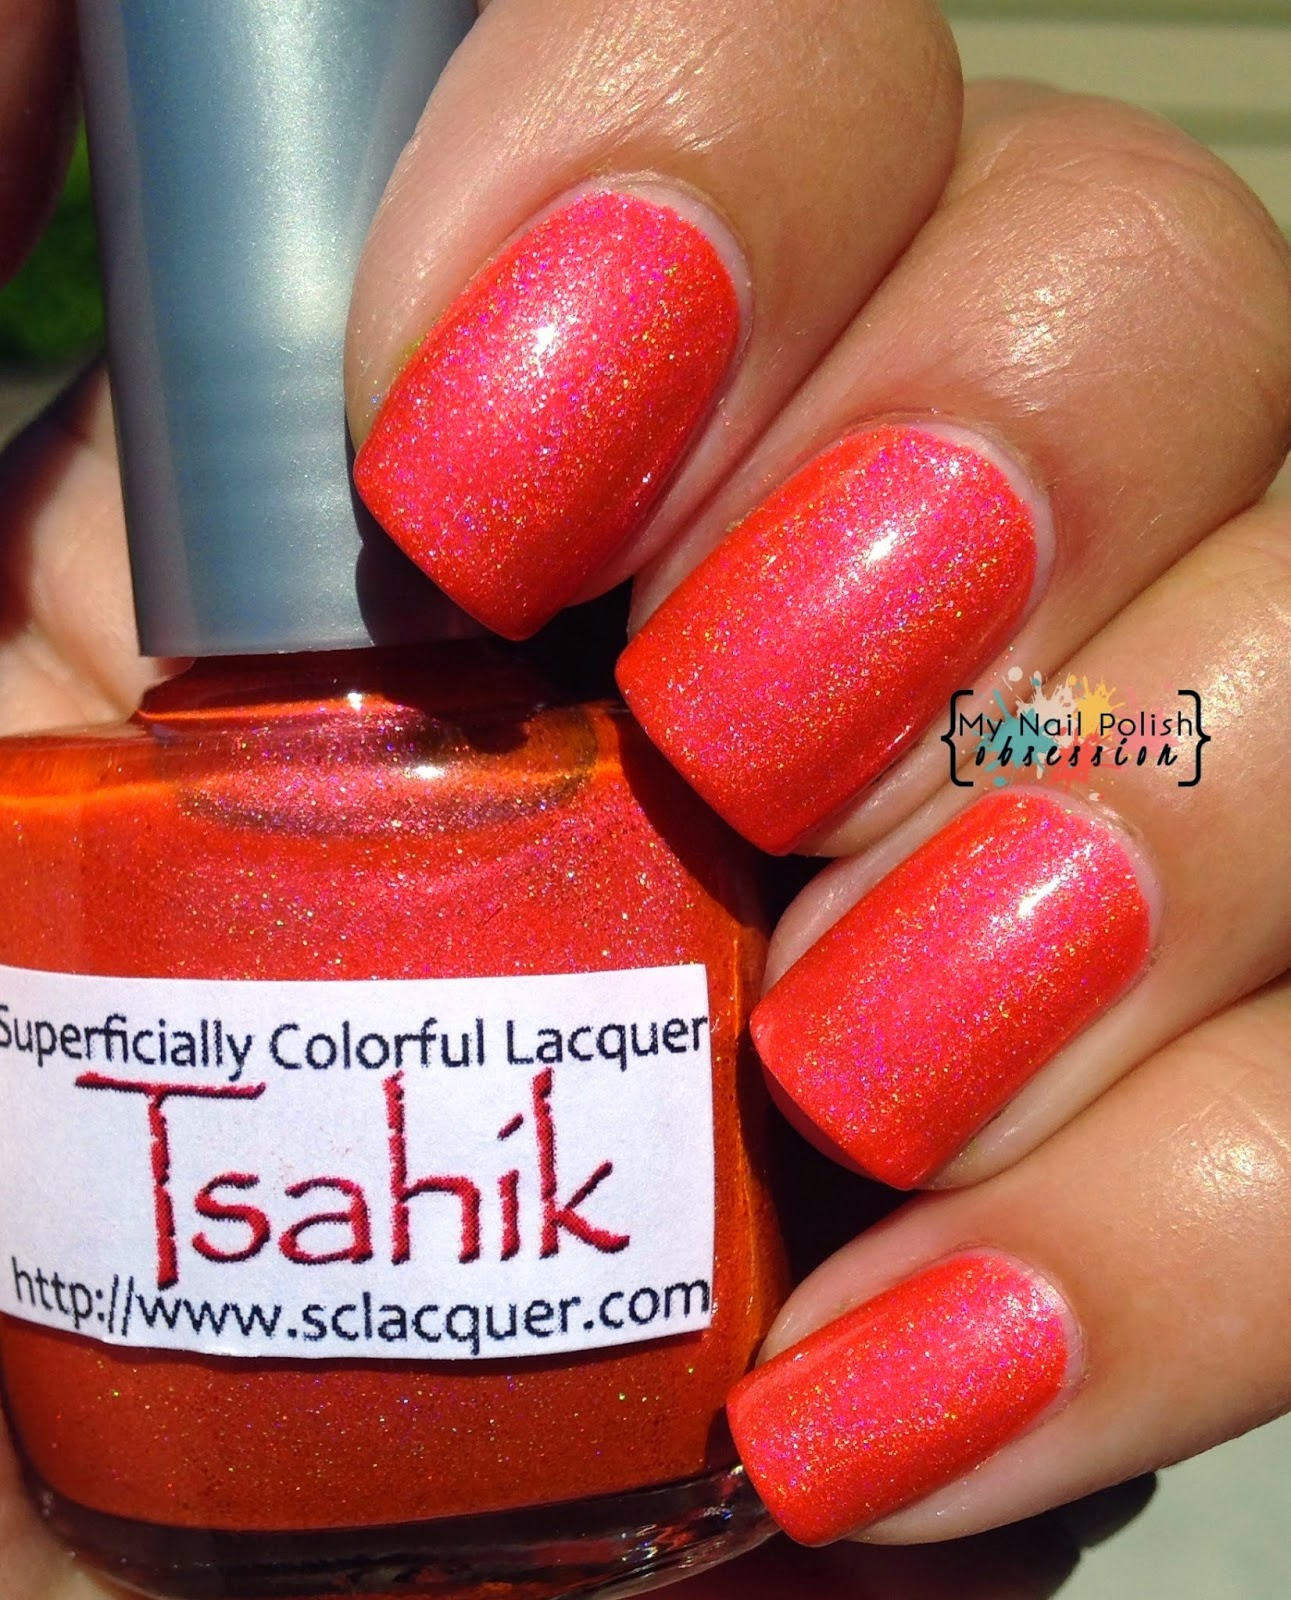 Superficially Colorful Lacquers Tsahik